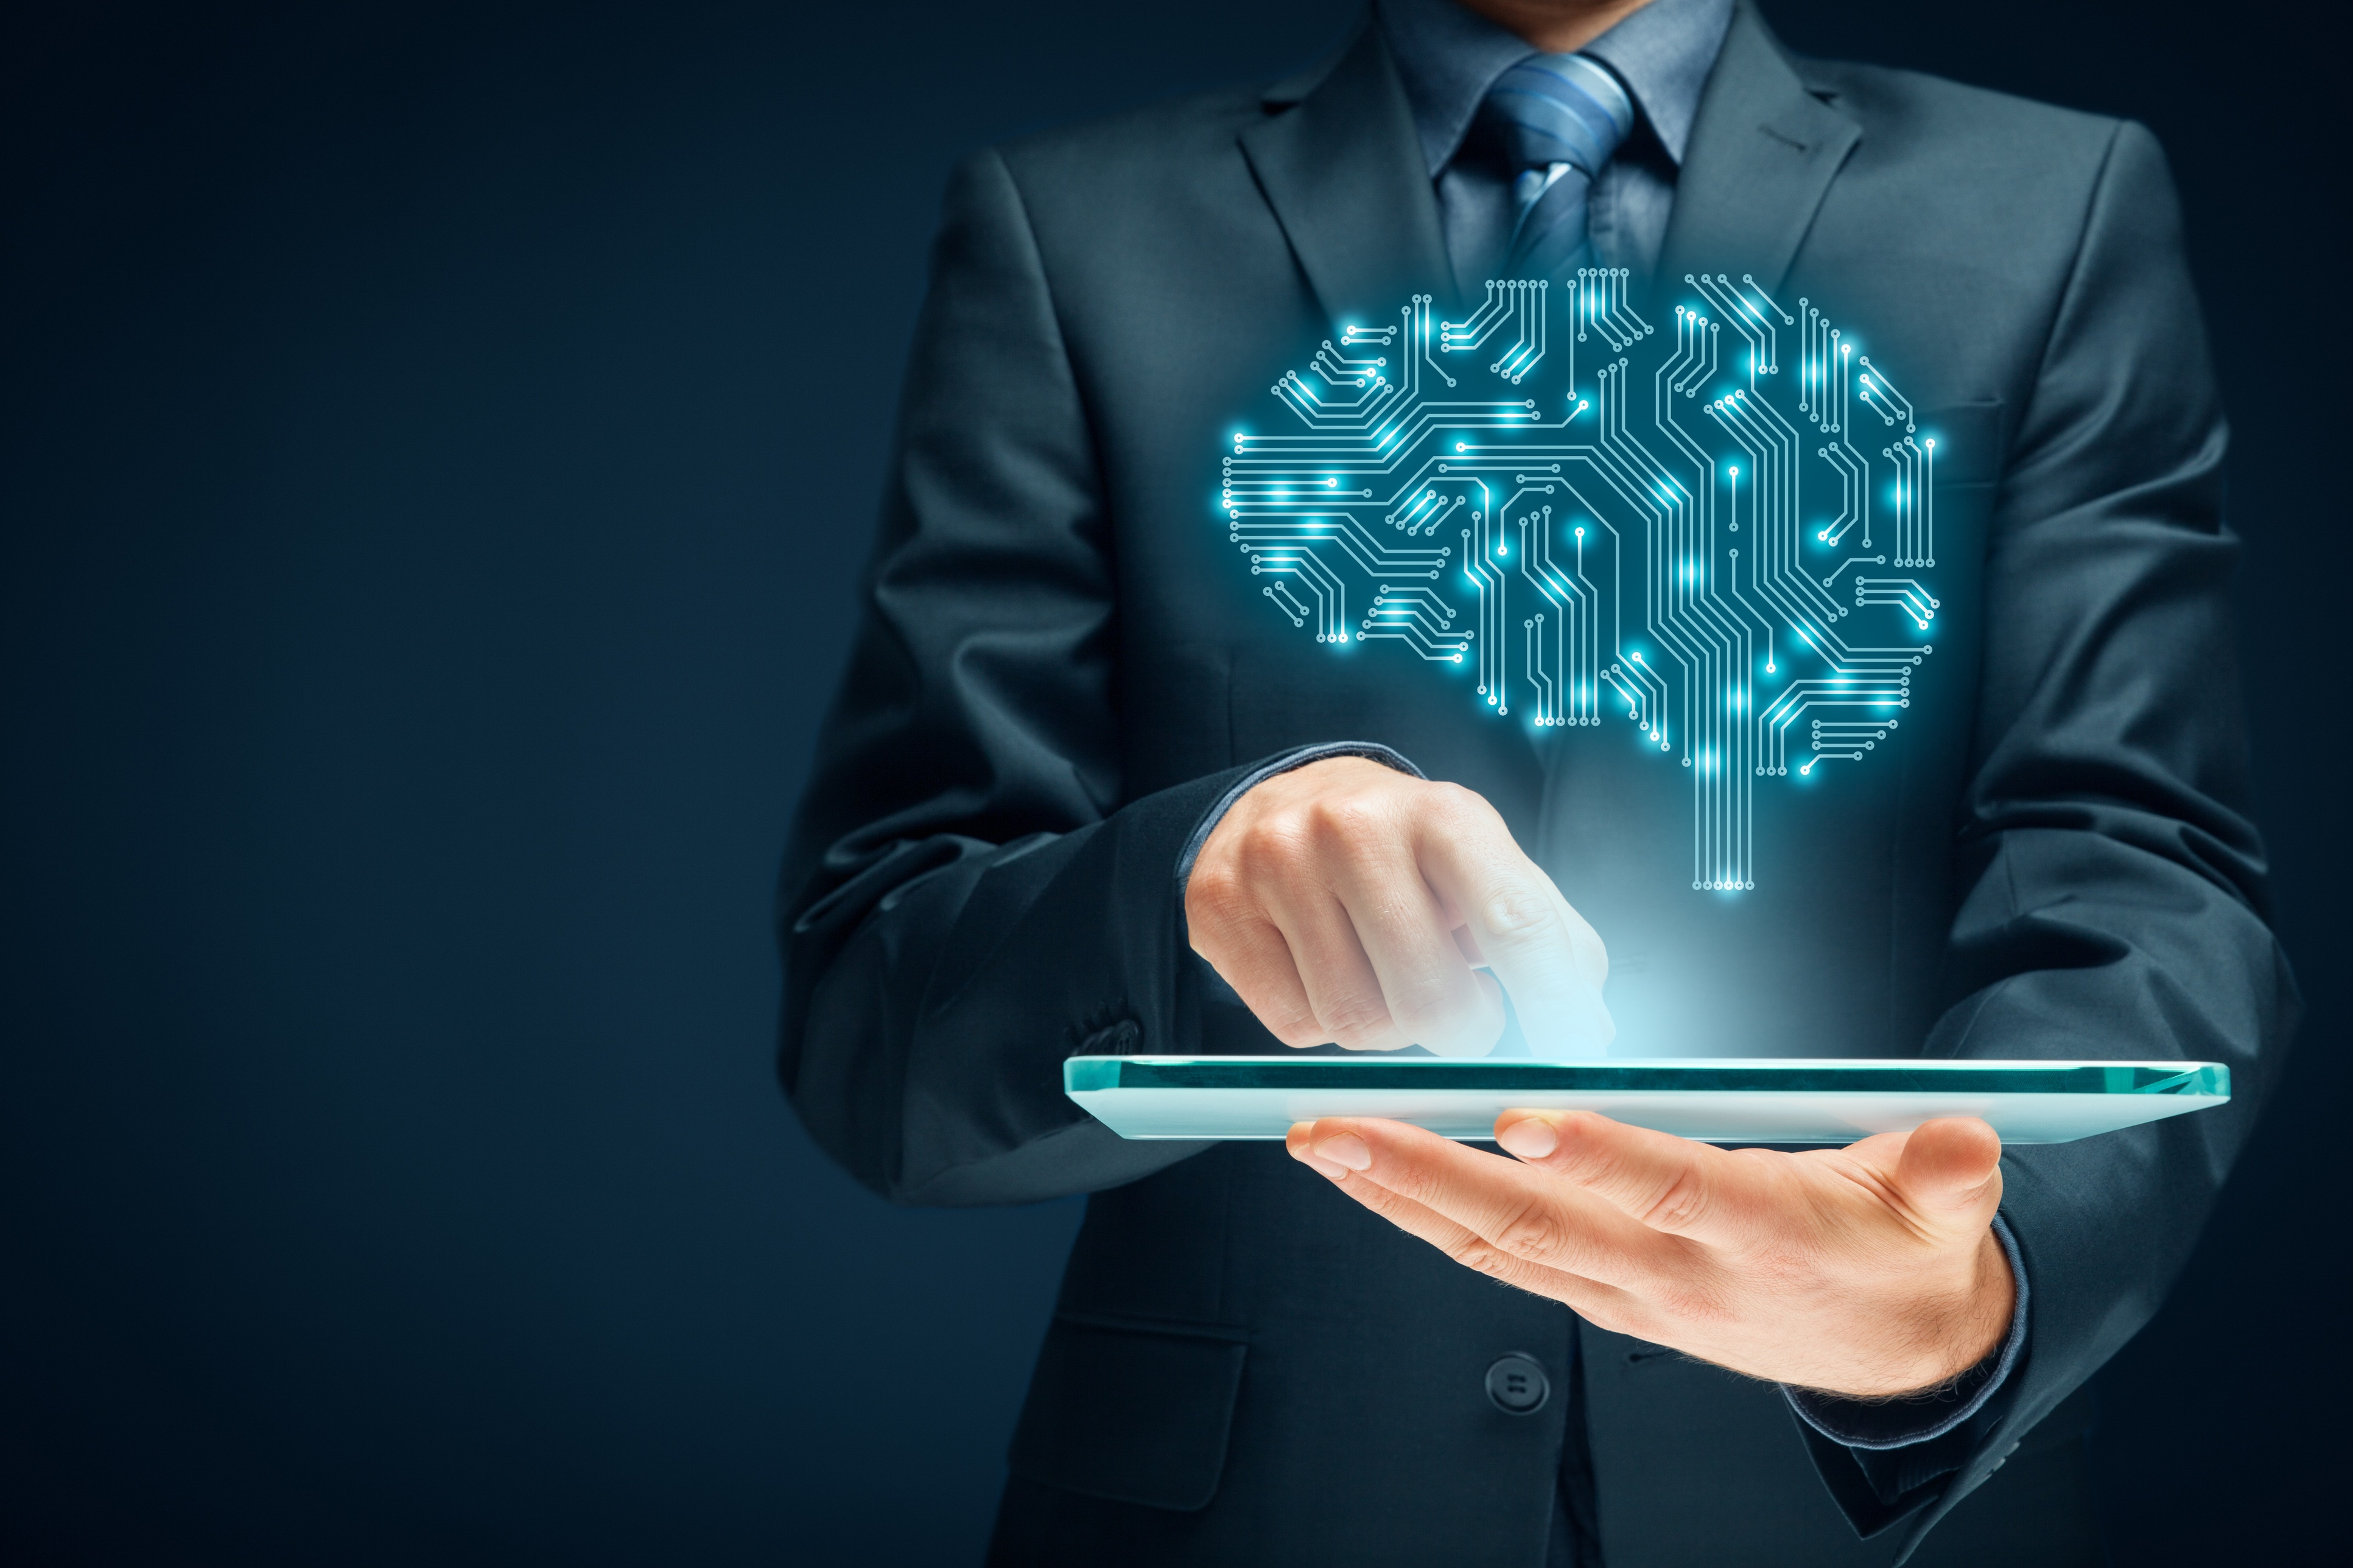 Artificial and Augmented Intelligence is augmenting our capabilities, allowing us to do more, with better accuracy, in less time.